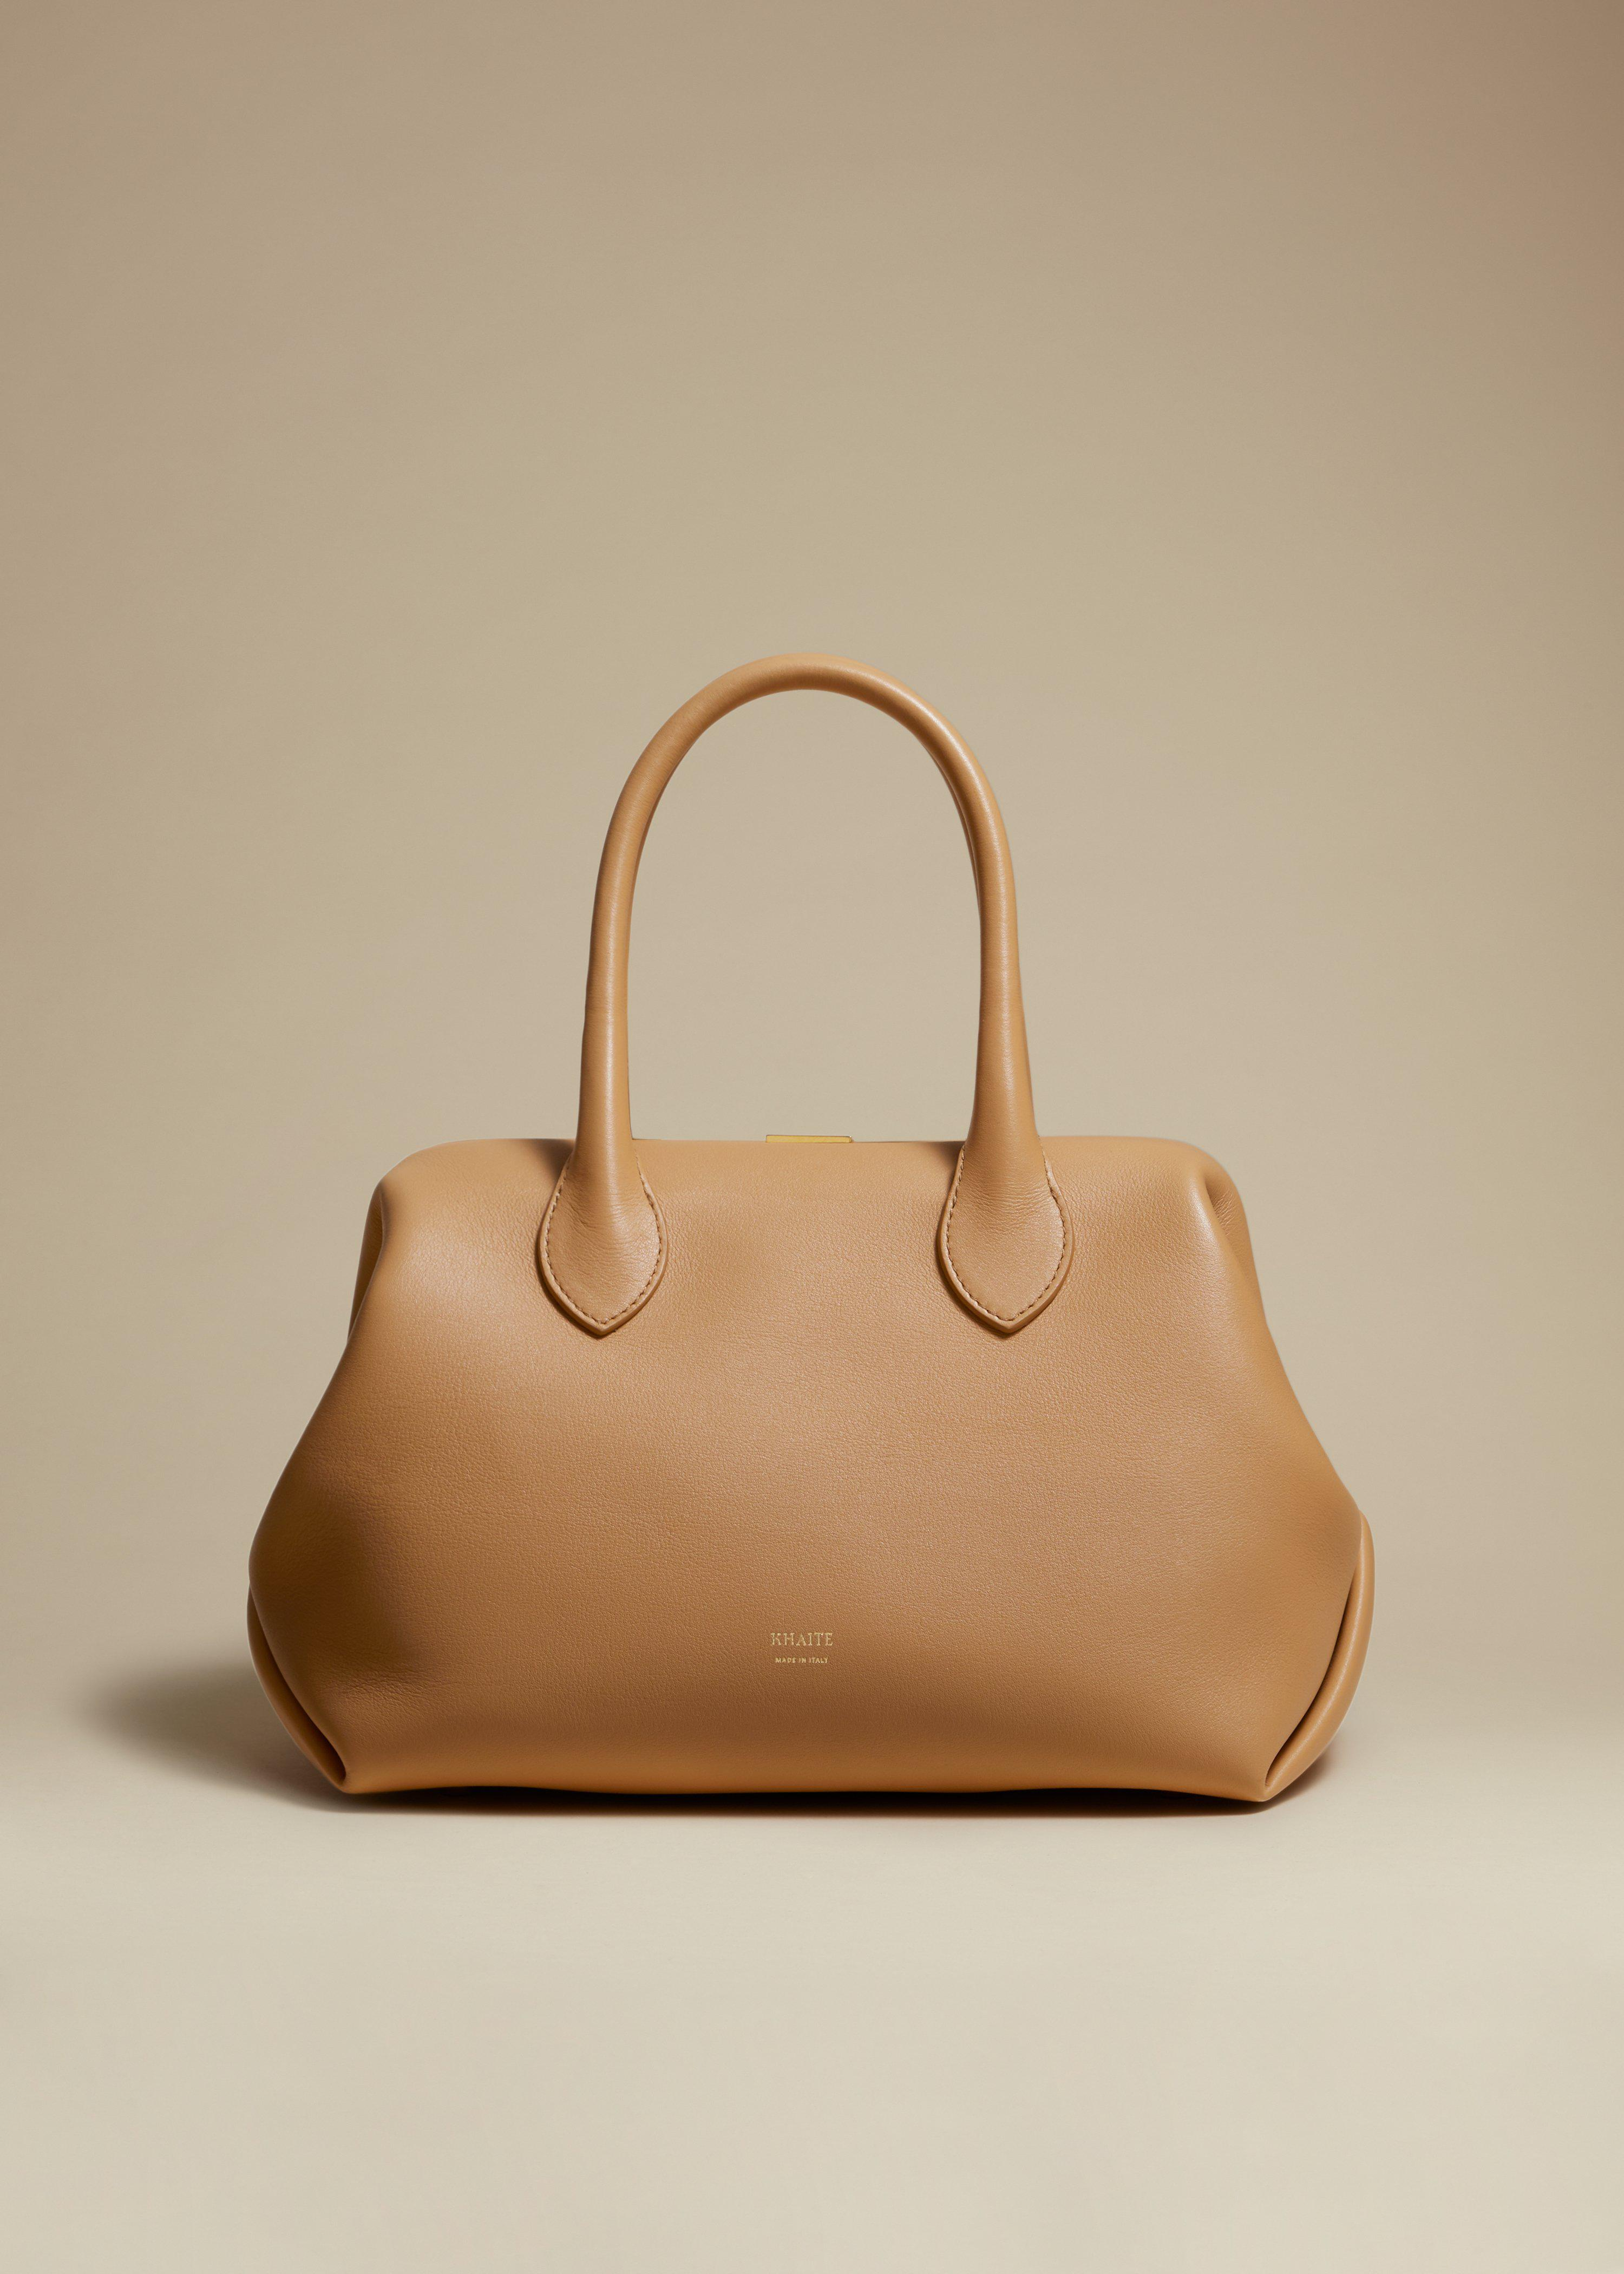 The Small Doctor Bag in Tan Leather